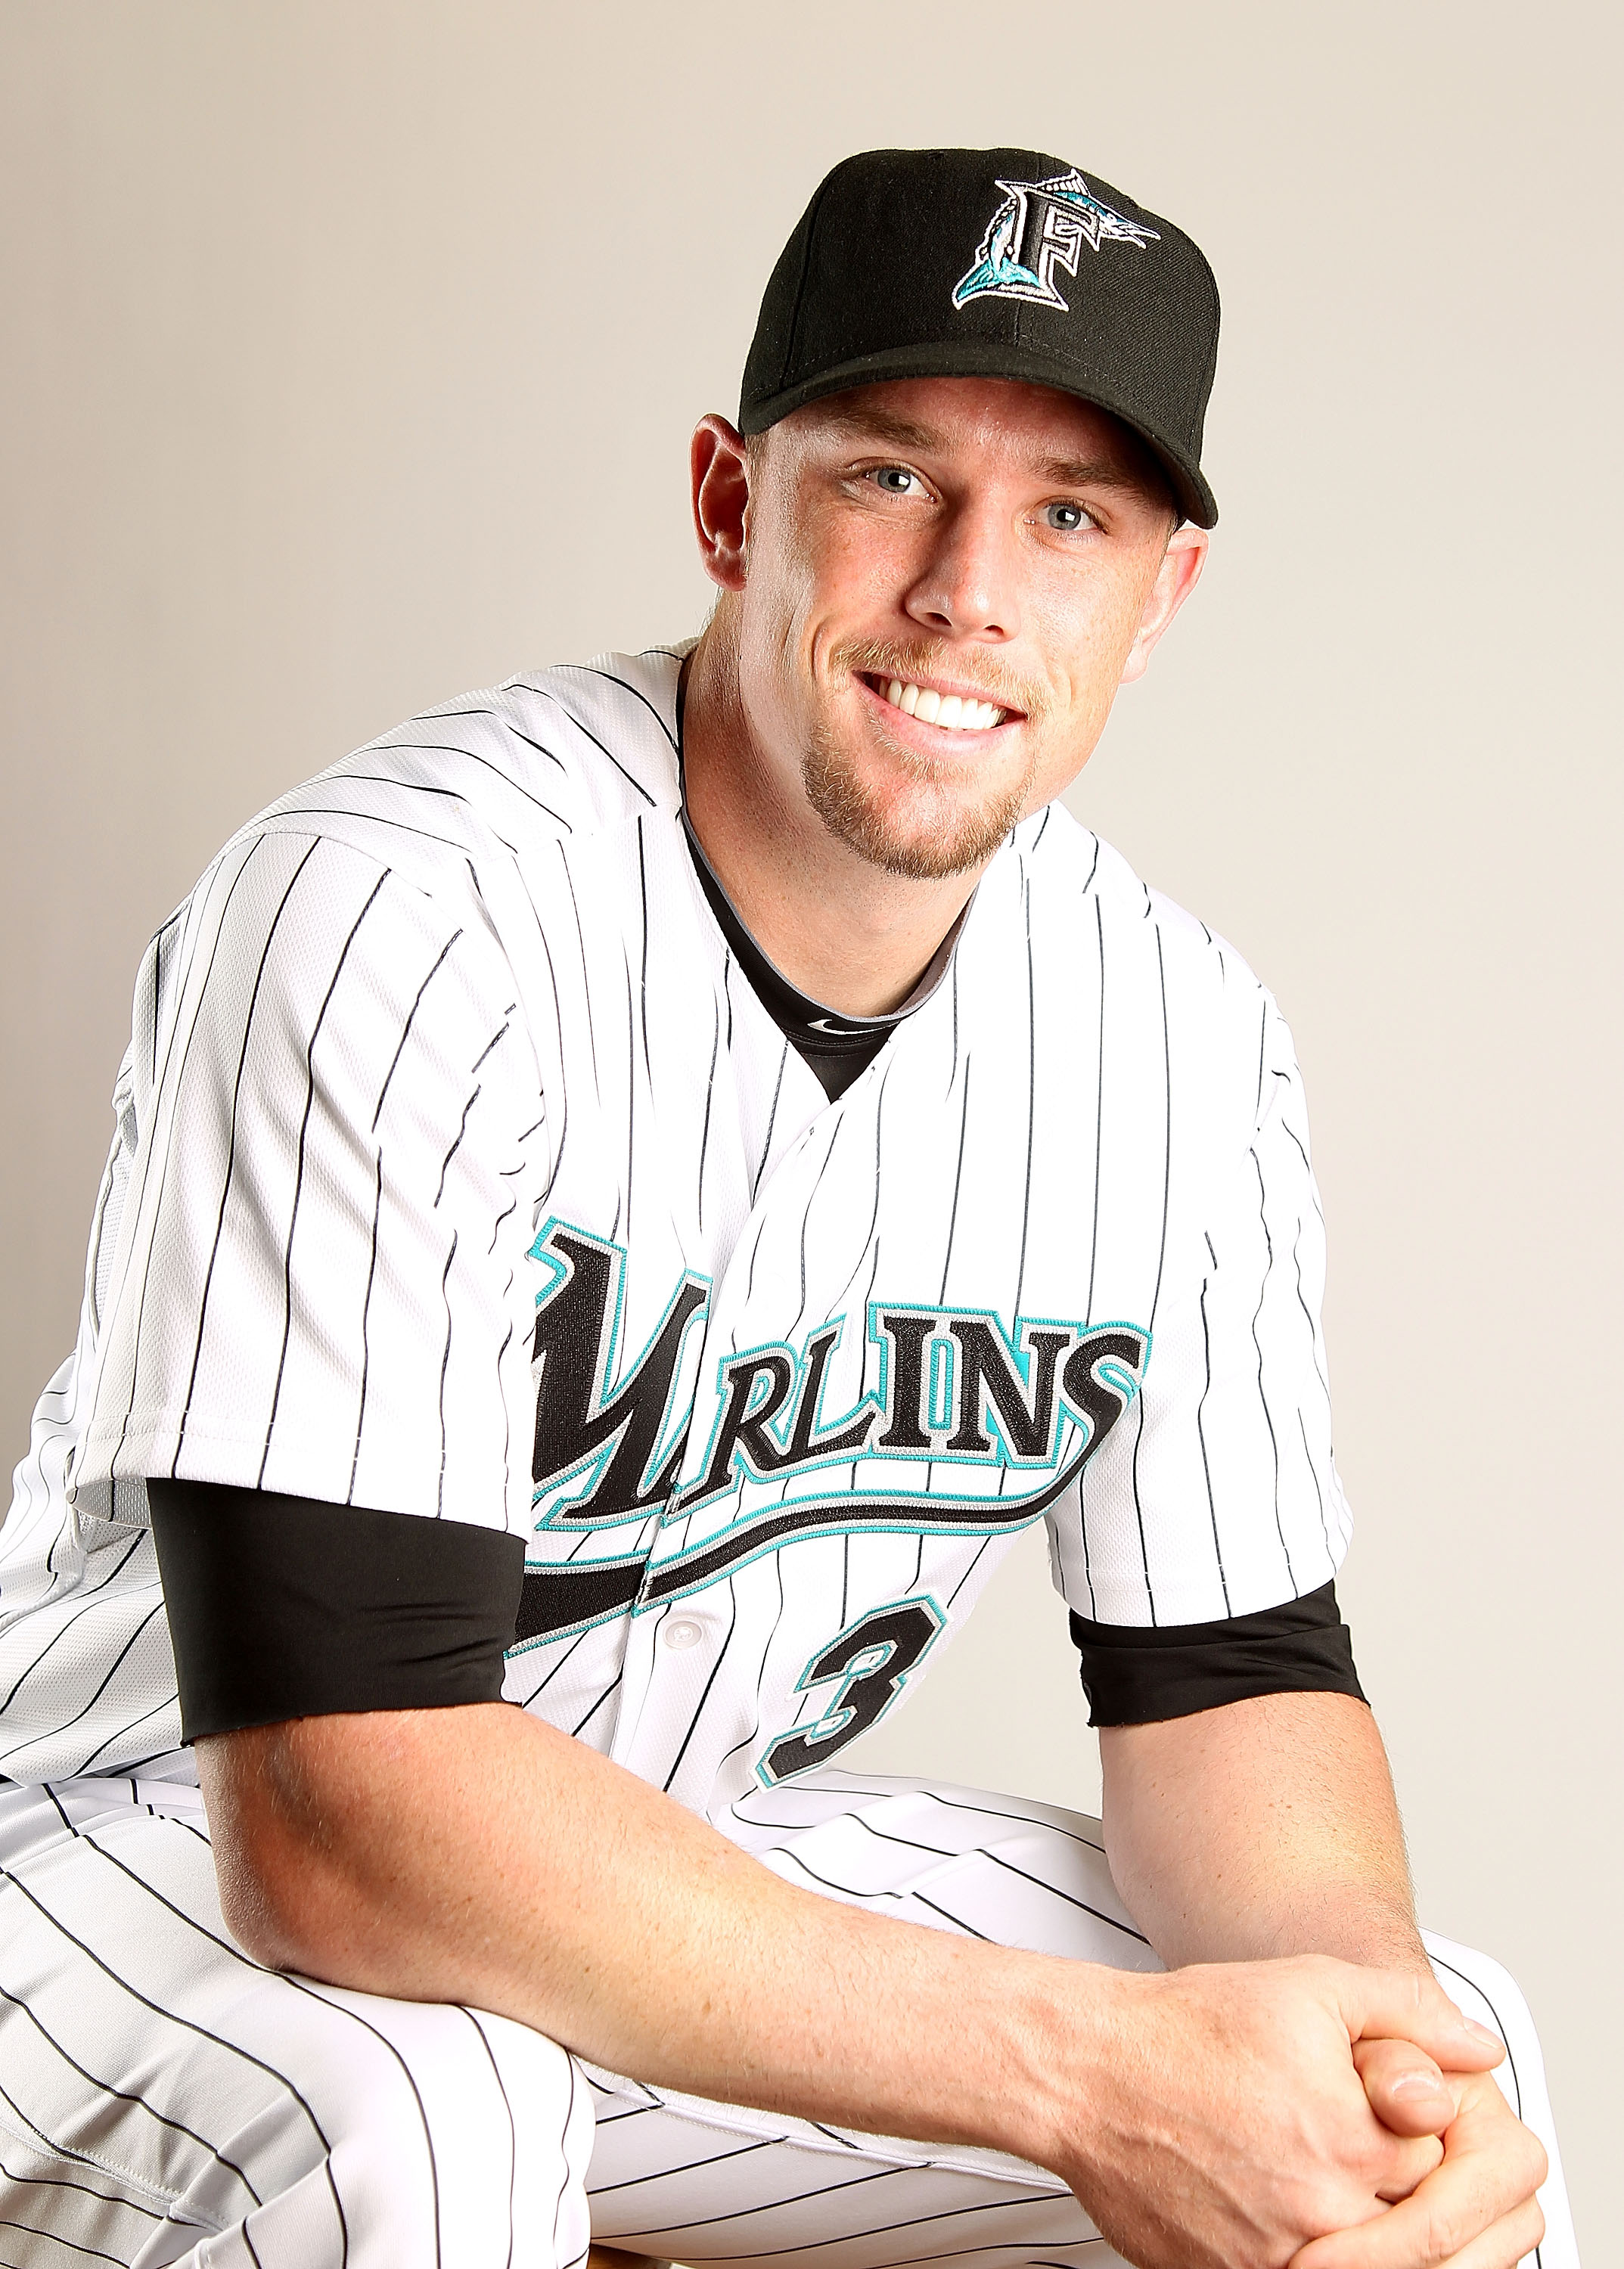 JUPITER, FL - FEBRUARY 23:  Scott Cousins #33 of the Florida Marlins during Photo Day at Roger Dean Stadium on February 23, 2011 in Jupiter, Florida.  (Photo by Mike Ehrmann/Getty Images)